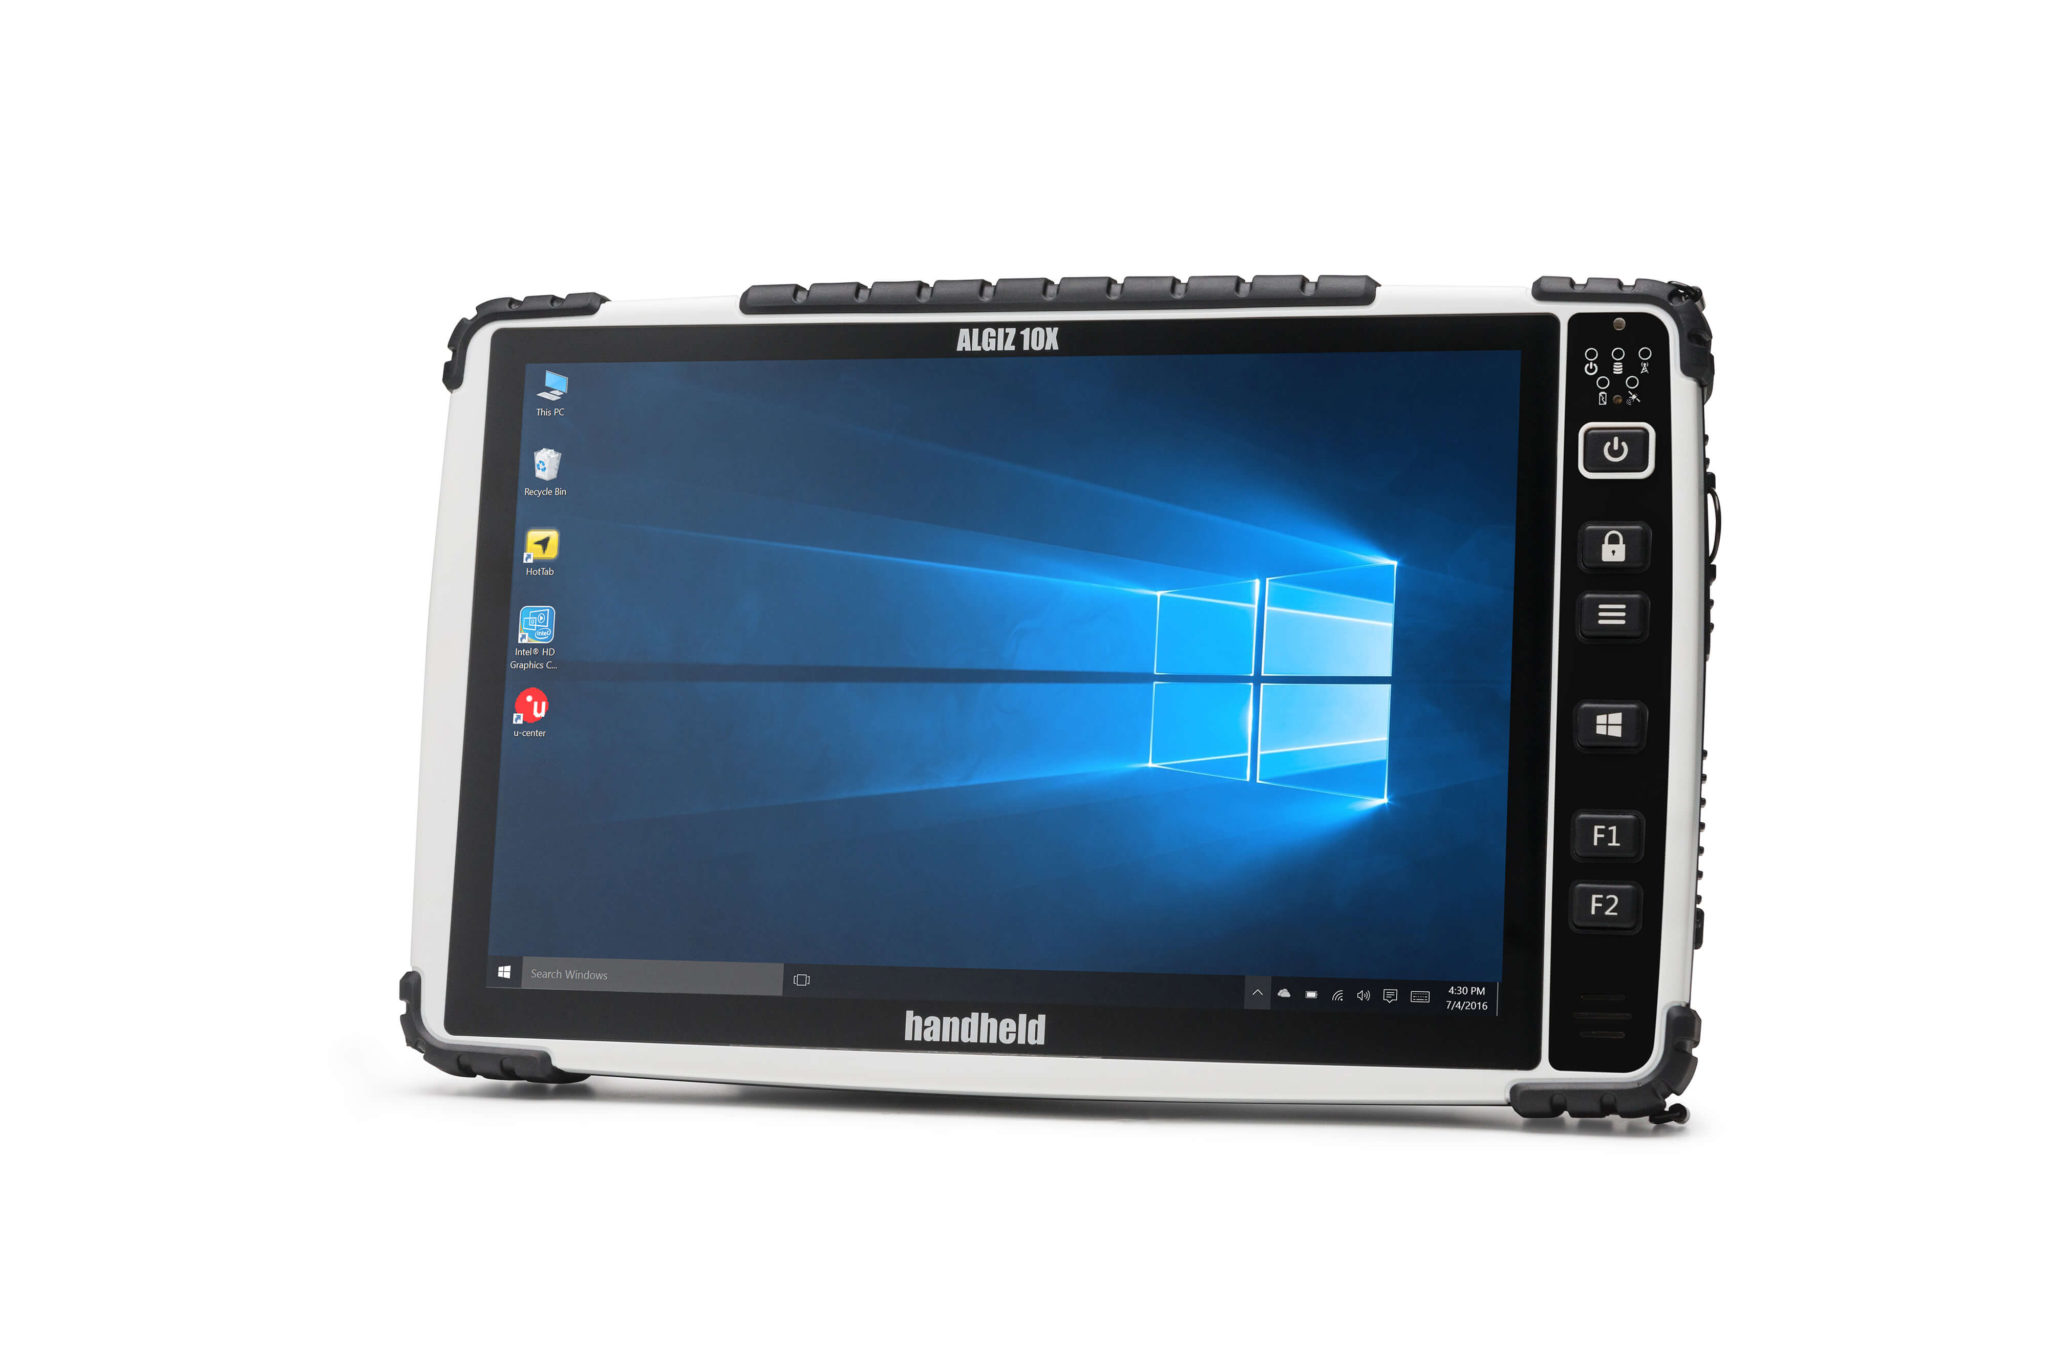 algiz-10x-outdoor-rugged-tablet-capacitive